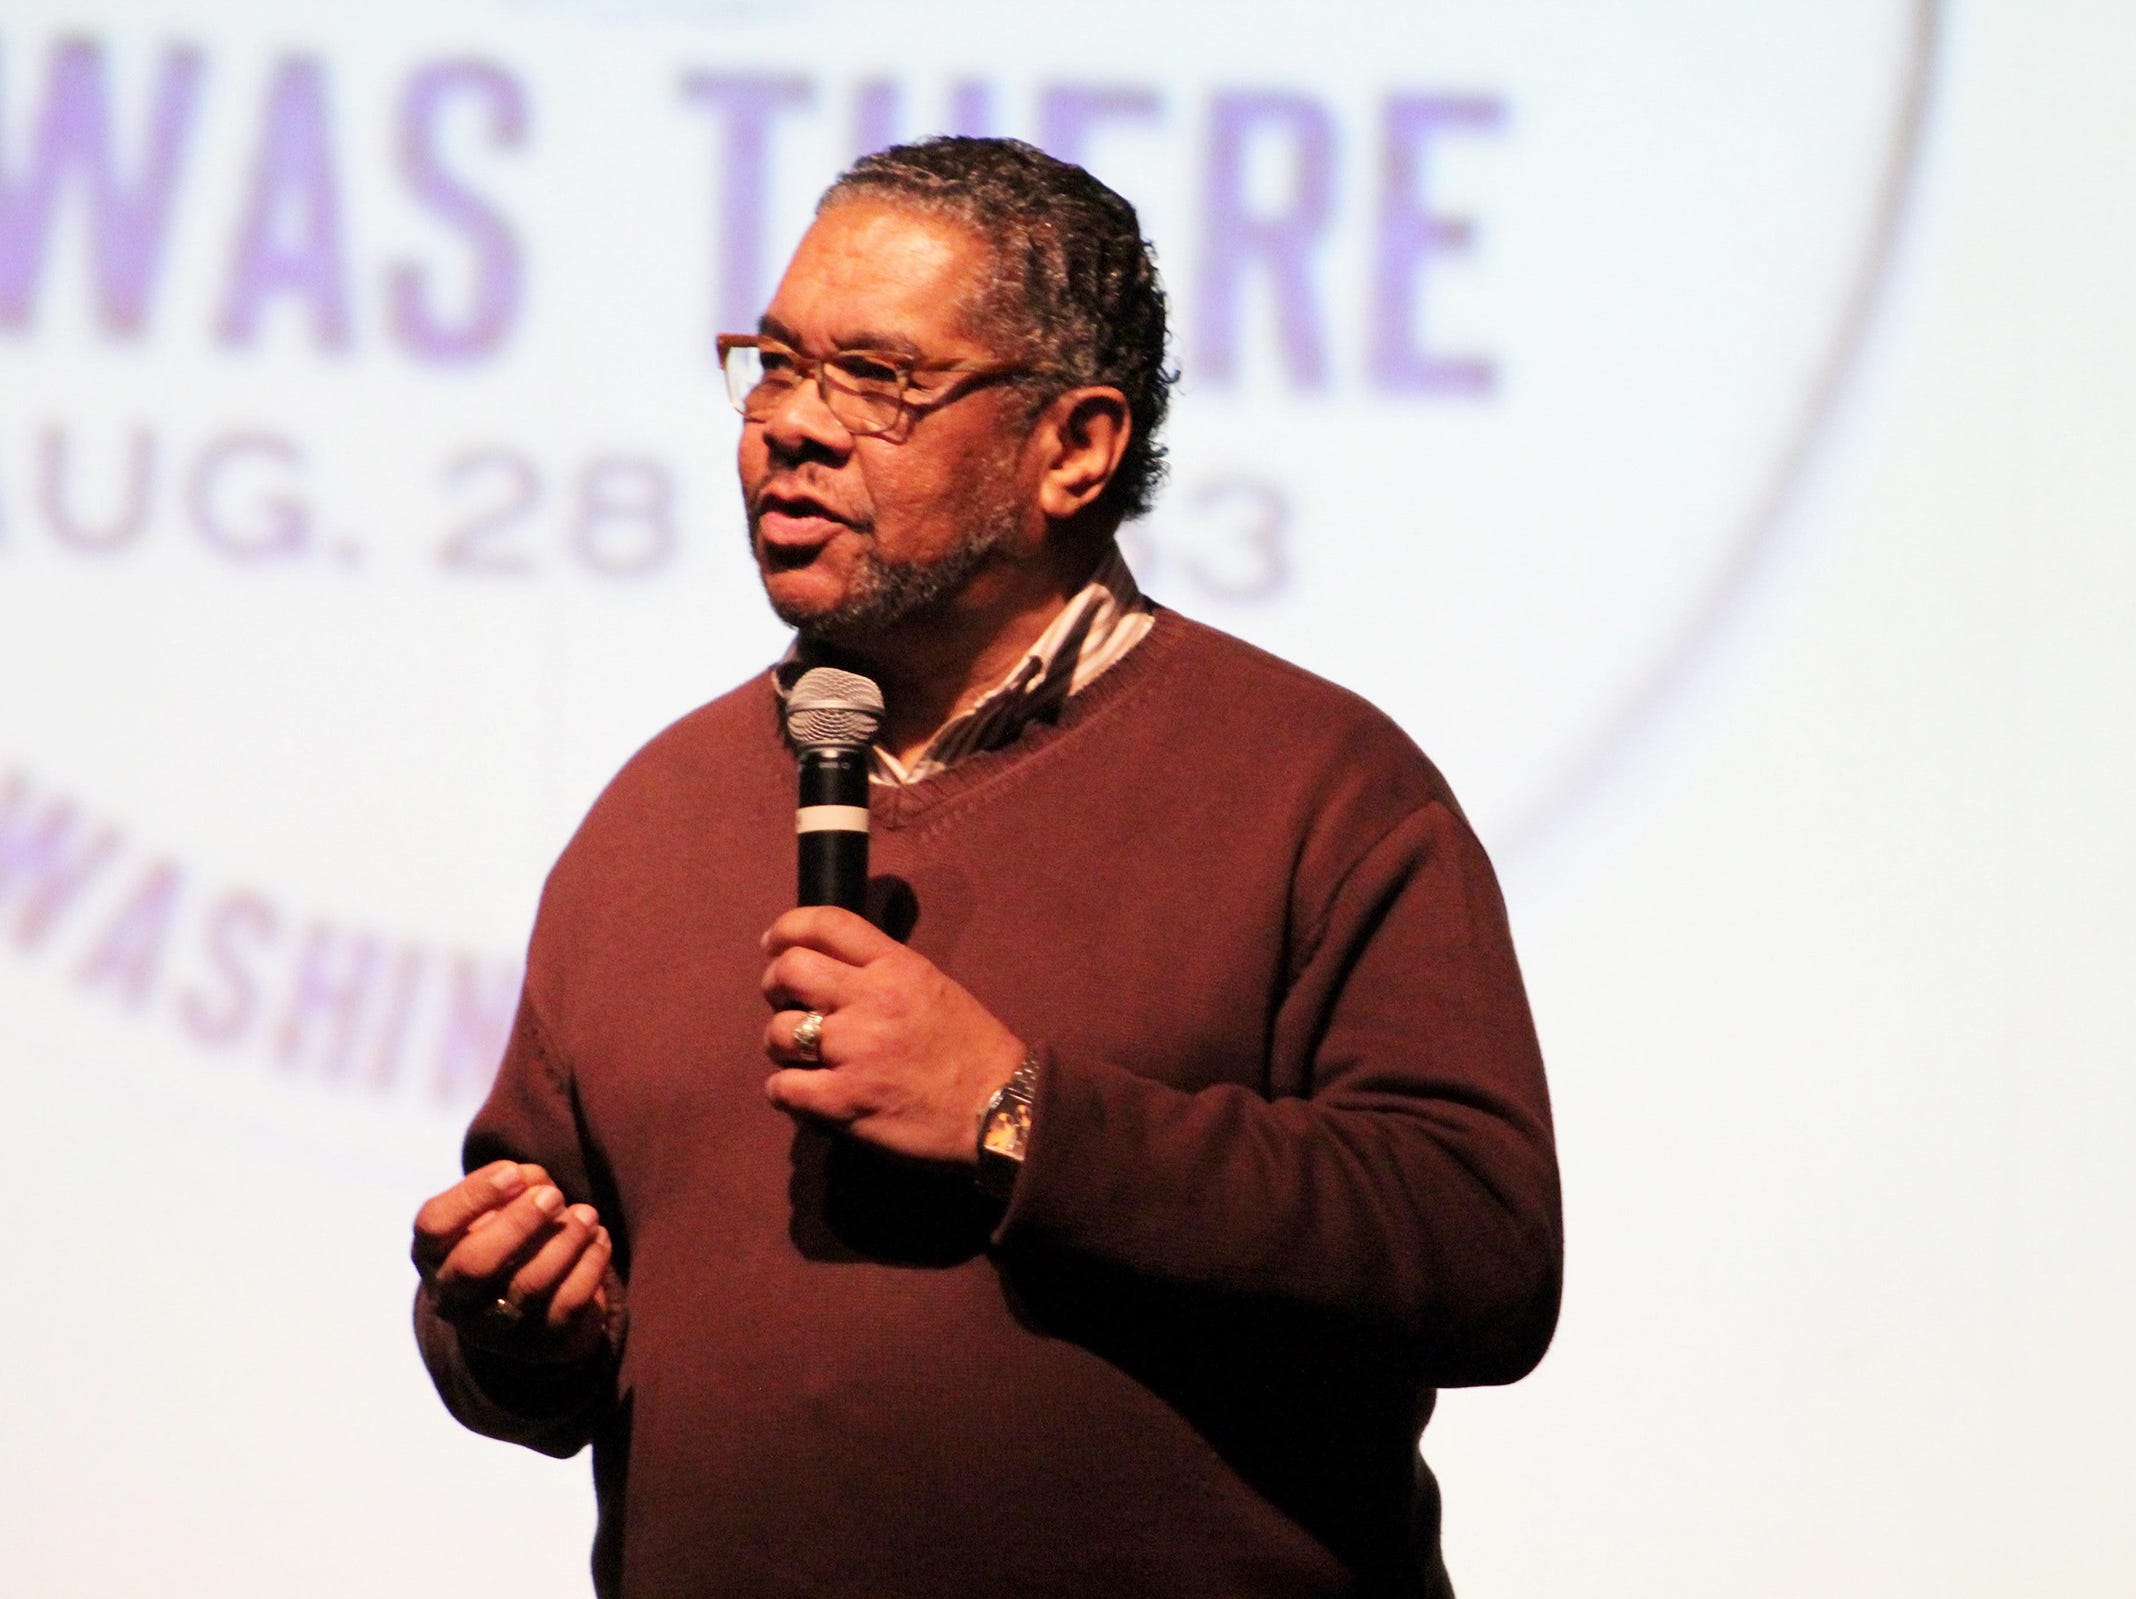 Ronnie Brooks, parent outreach coordinator at McKay, speaks at the Black History Month Community Event at McKay High School in Salem on Thursday, Feb. 28, 2019. About 100 people attended the Salem-Keizer event, which included music, dancing, poetry and tributes to prominent black leaders throughout United States history.